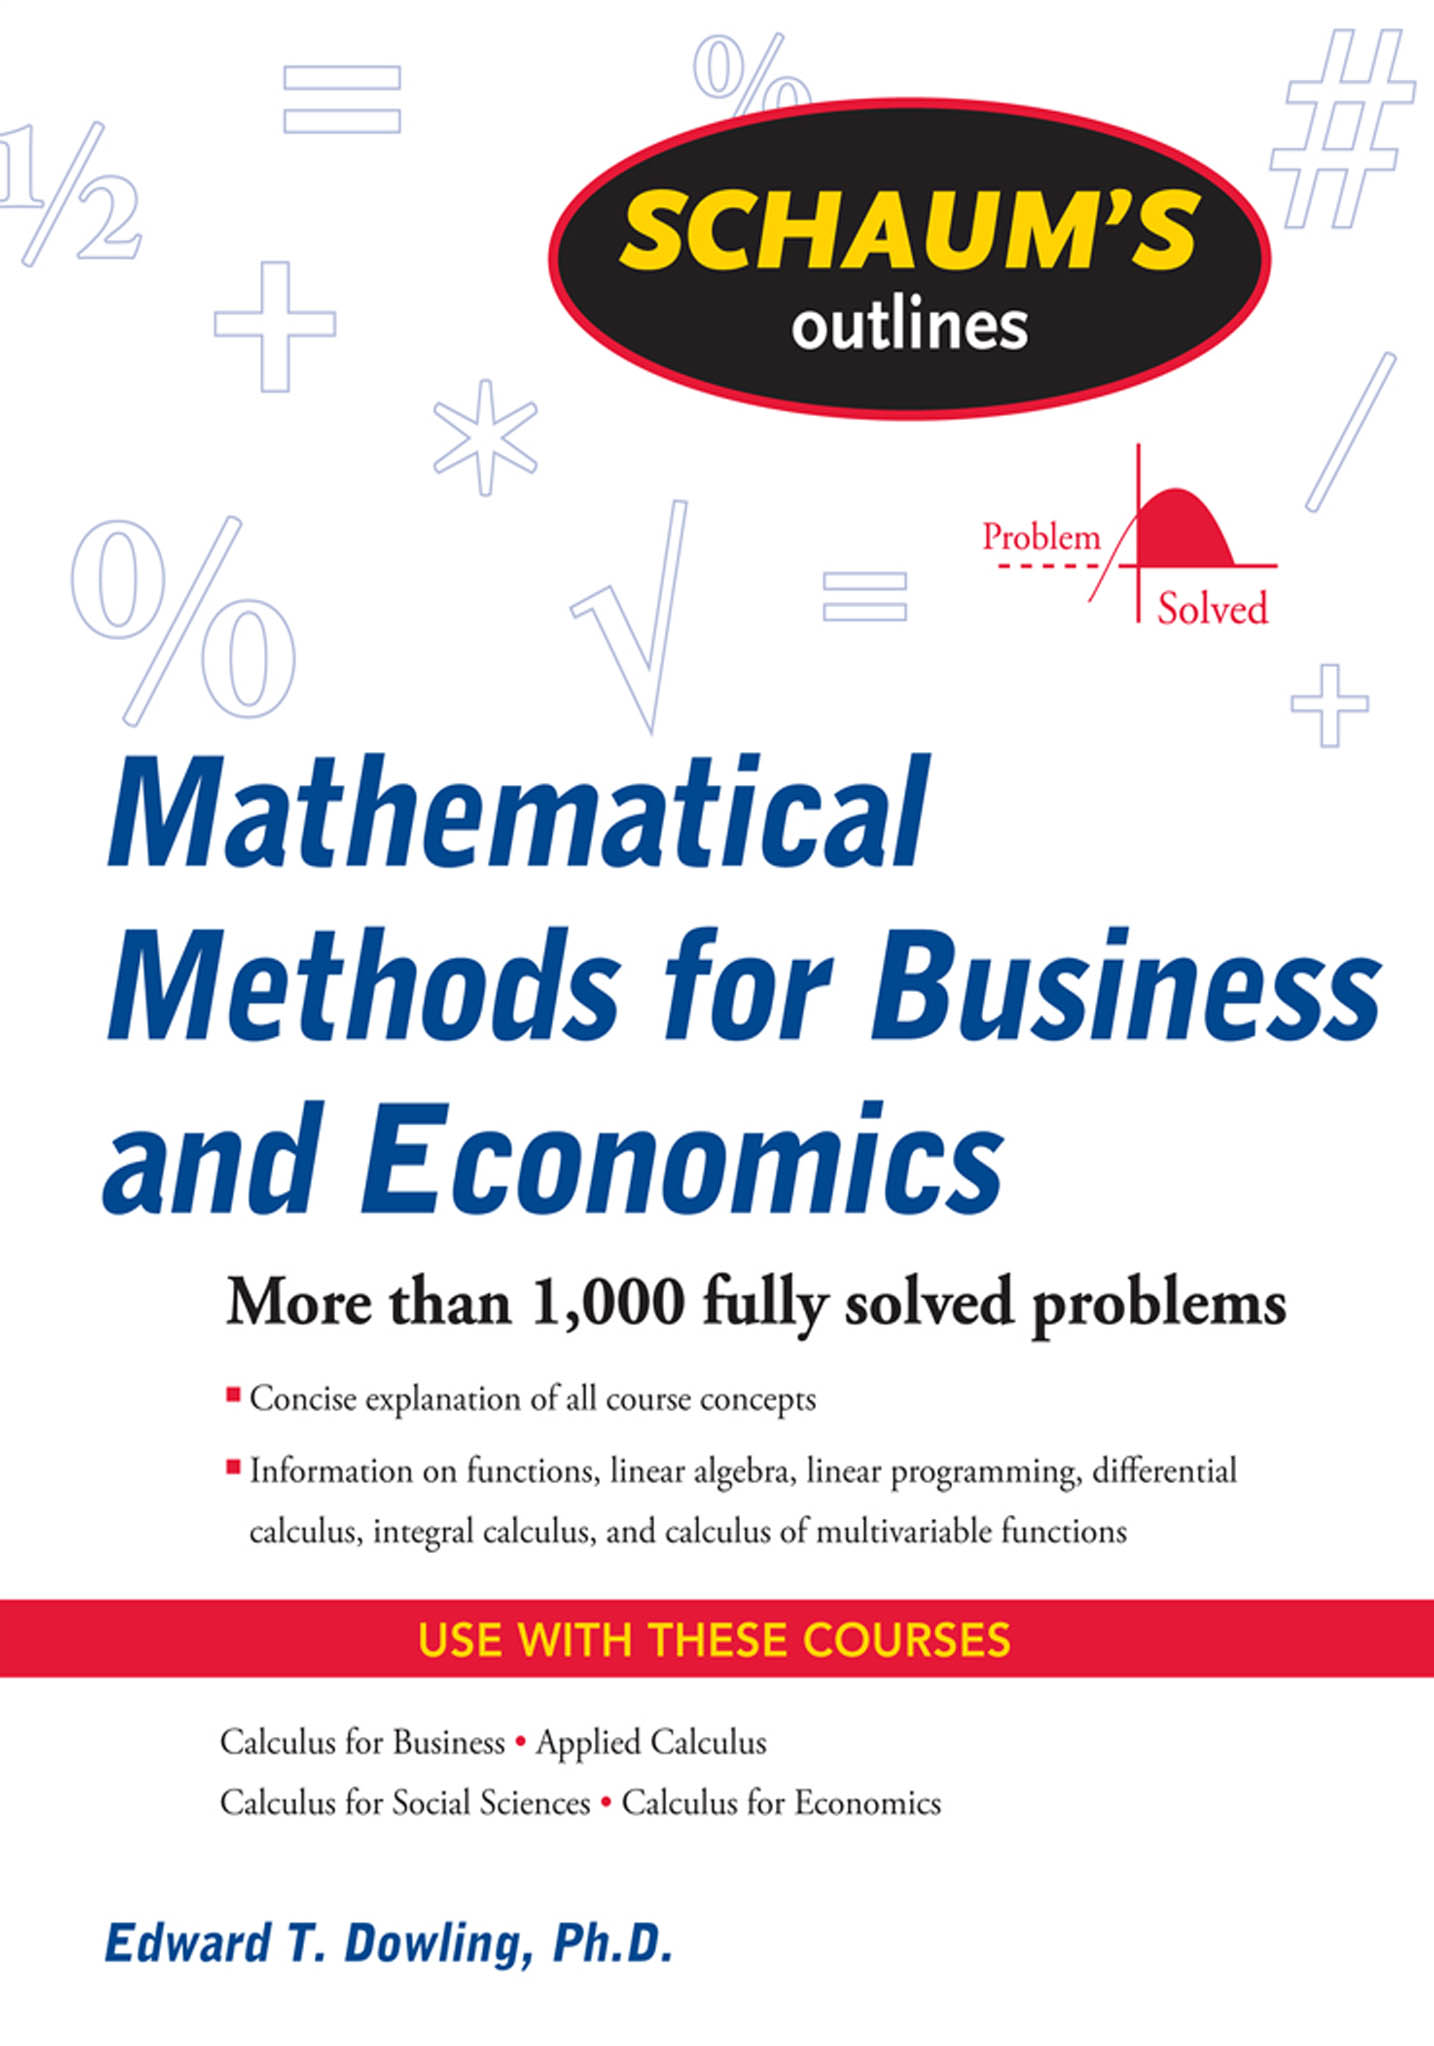 Download Ebook Schaum's Outline of Mathematical Methods for Business and Economics by Edward T. Dowling Pdf